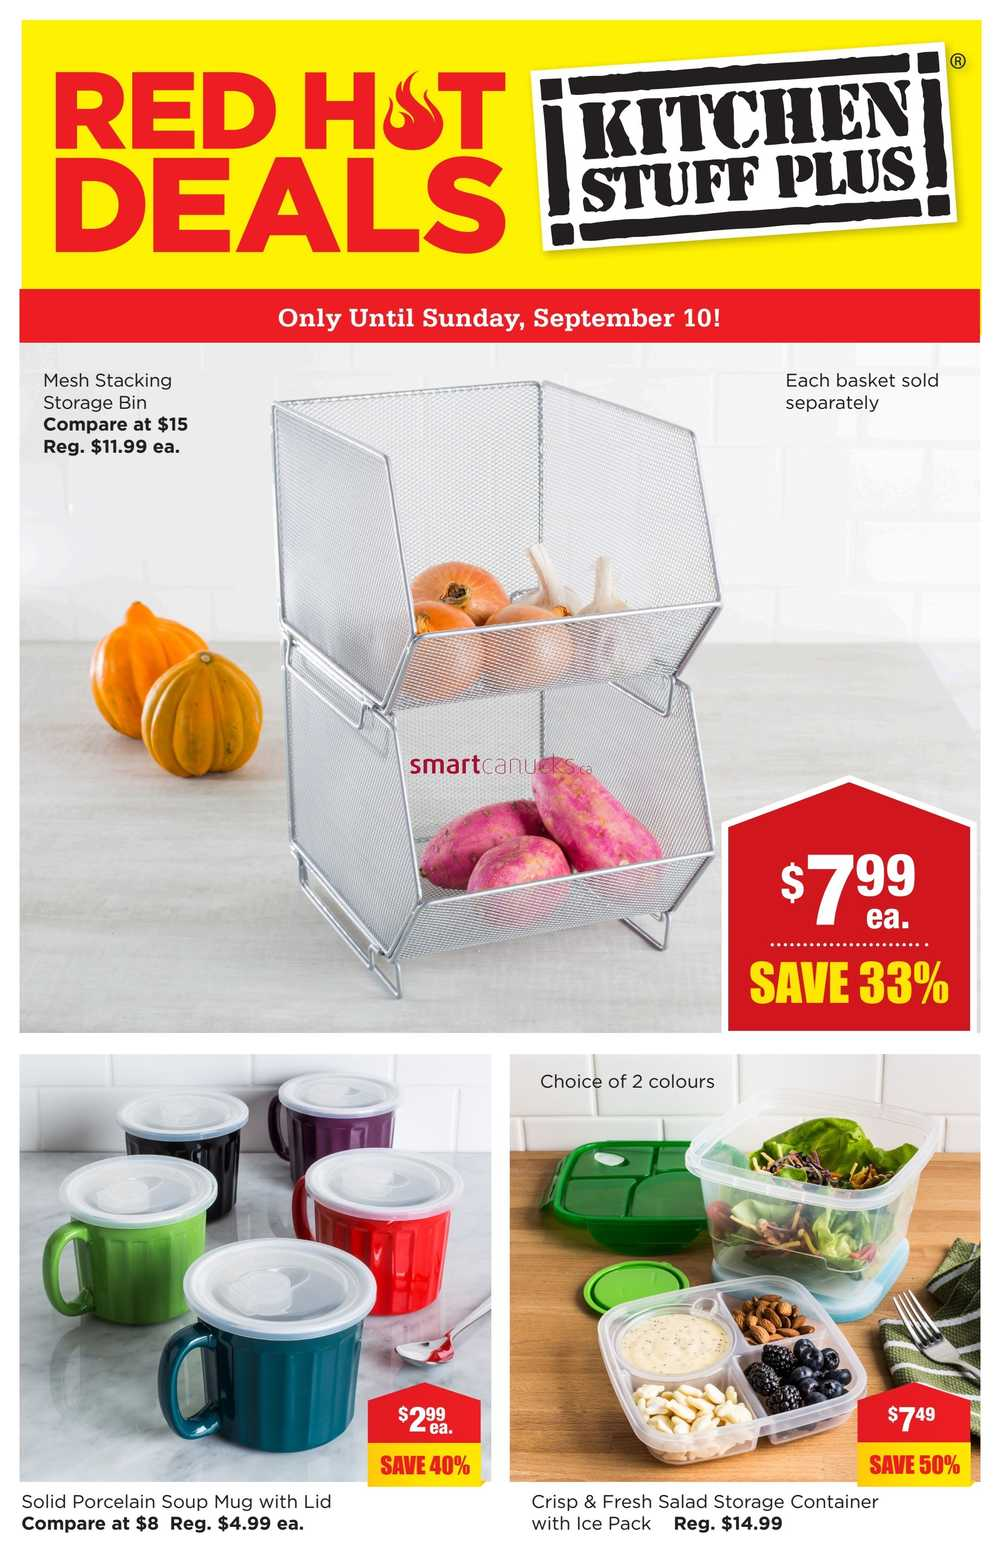 Looking for Kitchen Stuff Plus deals? Find the latest deals, coupons and flyers from Kitchen Stuff Plus on hotlvstore.ga - Helping Canadians save money and time! Toronto, ON. EXPIRED Kitchen Stuff Plus Red Hot Deals: Henckels International Kitchen EXPIRED Kitchen Stuff Plus Red Hot Deals.